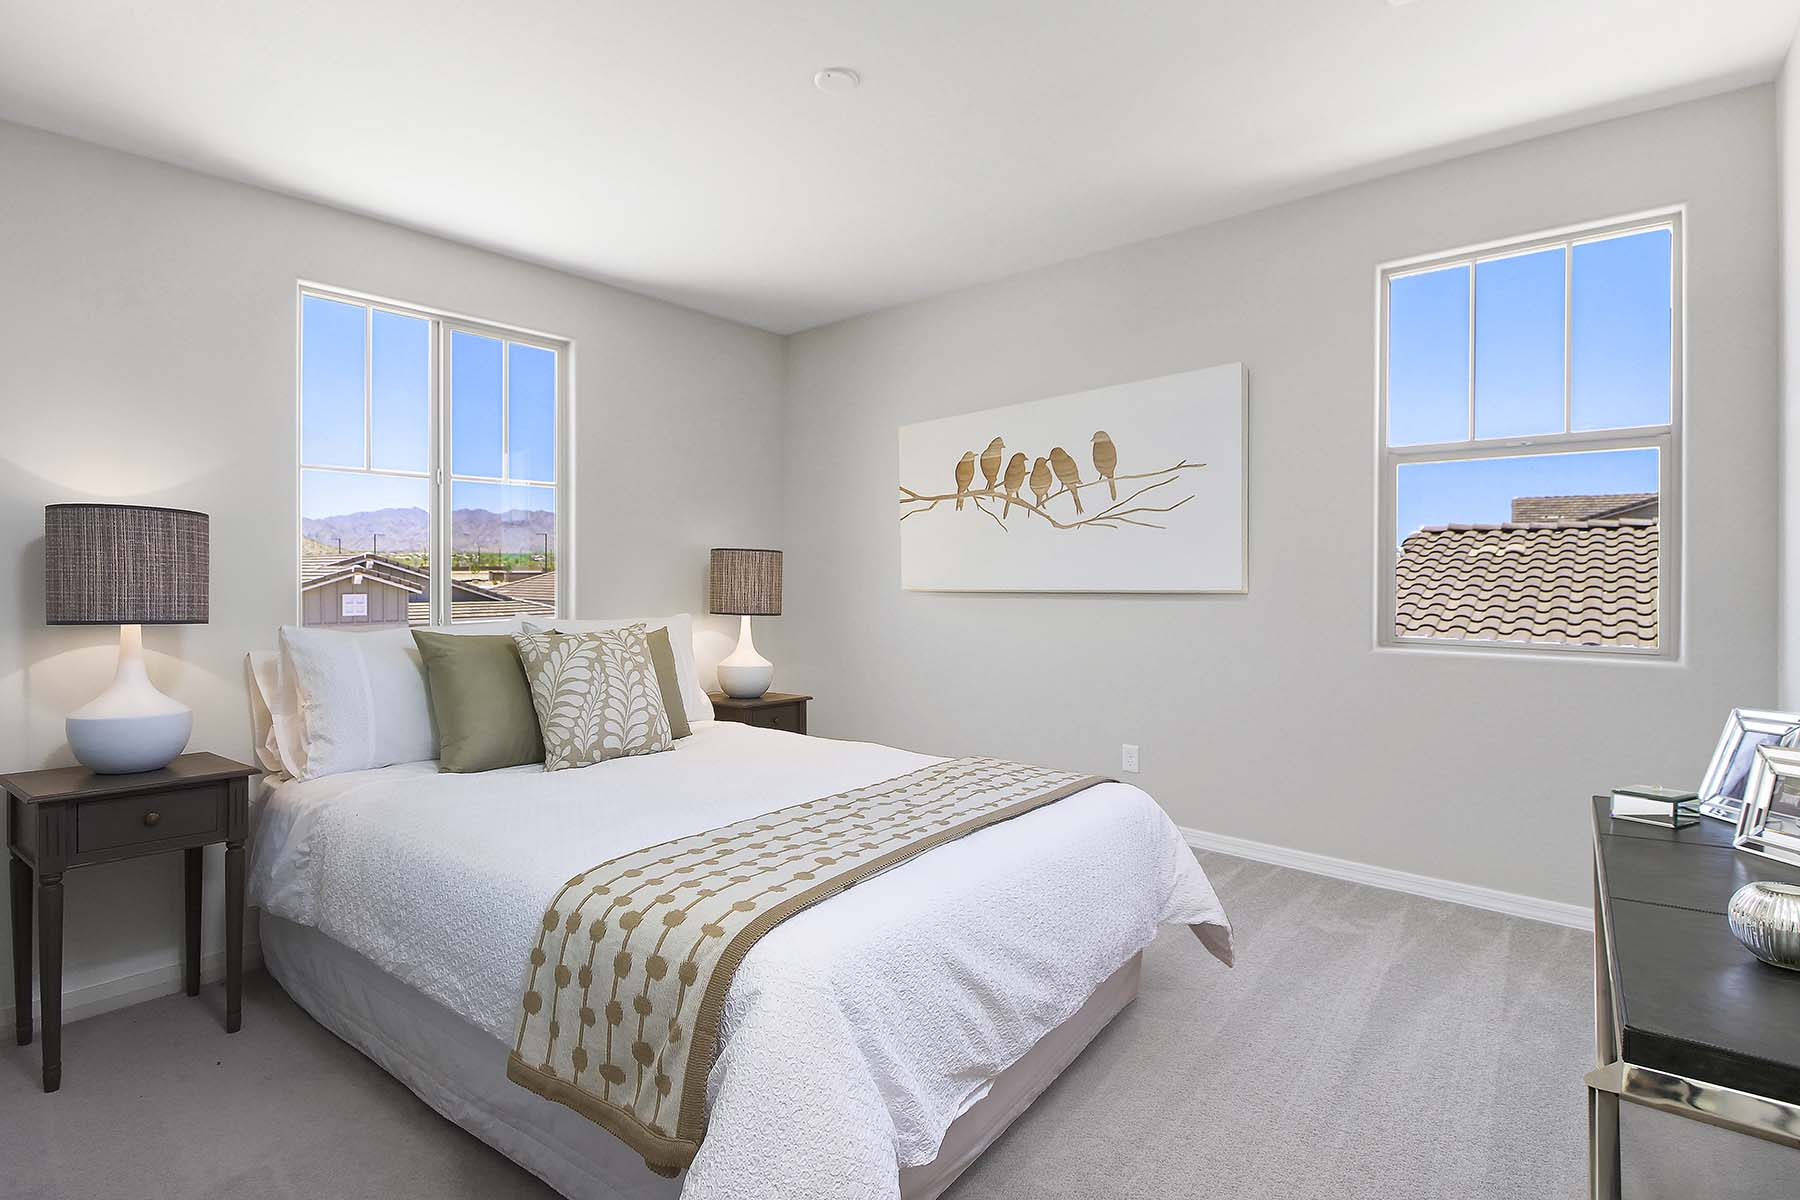 Sunflower Plan Bedroom at Brookside at Arroyo Seco in Buckeye Arizona by Mattamy Homes